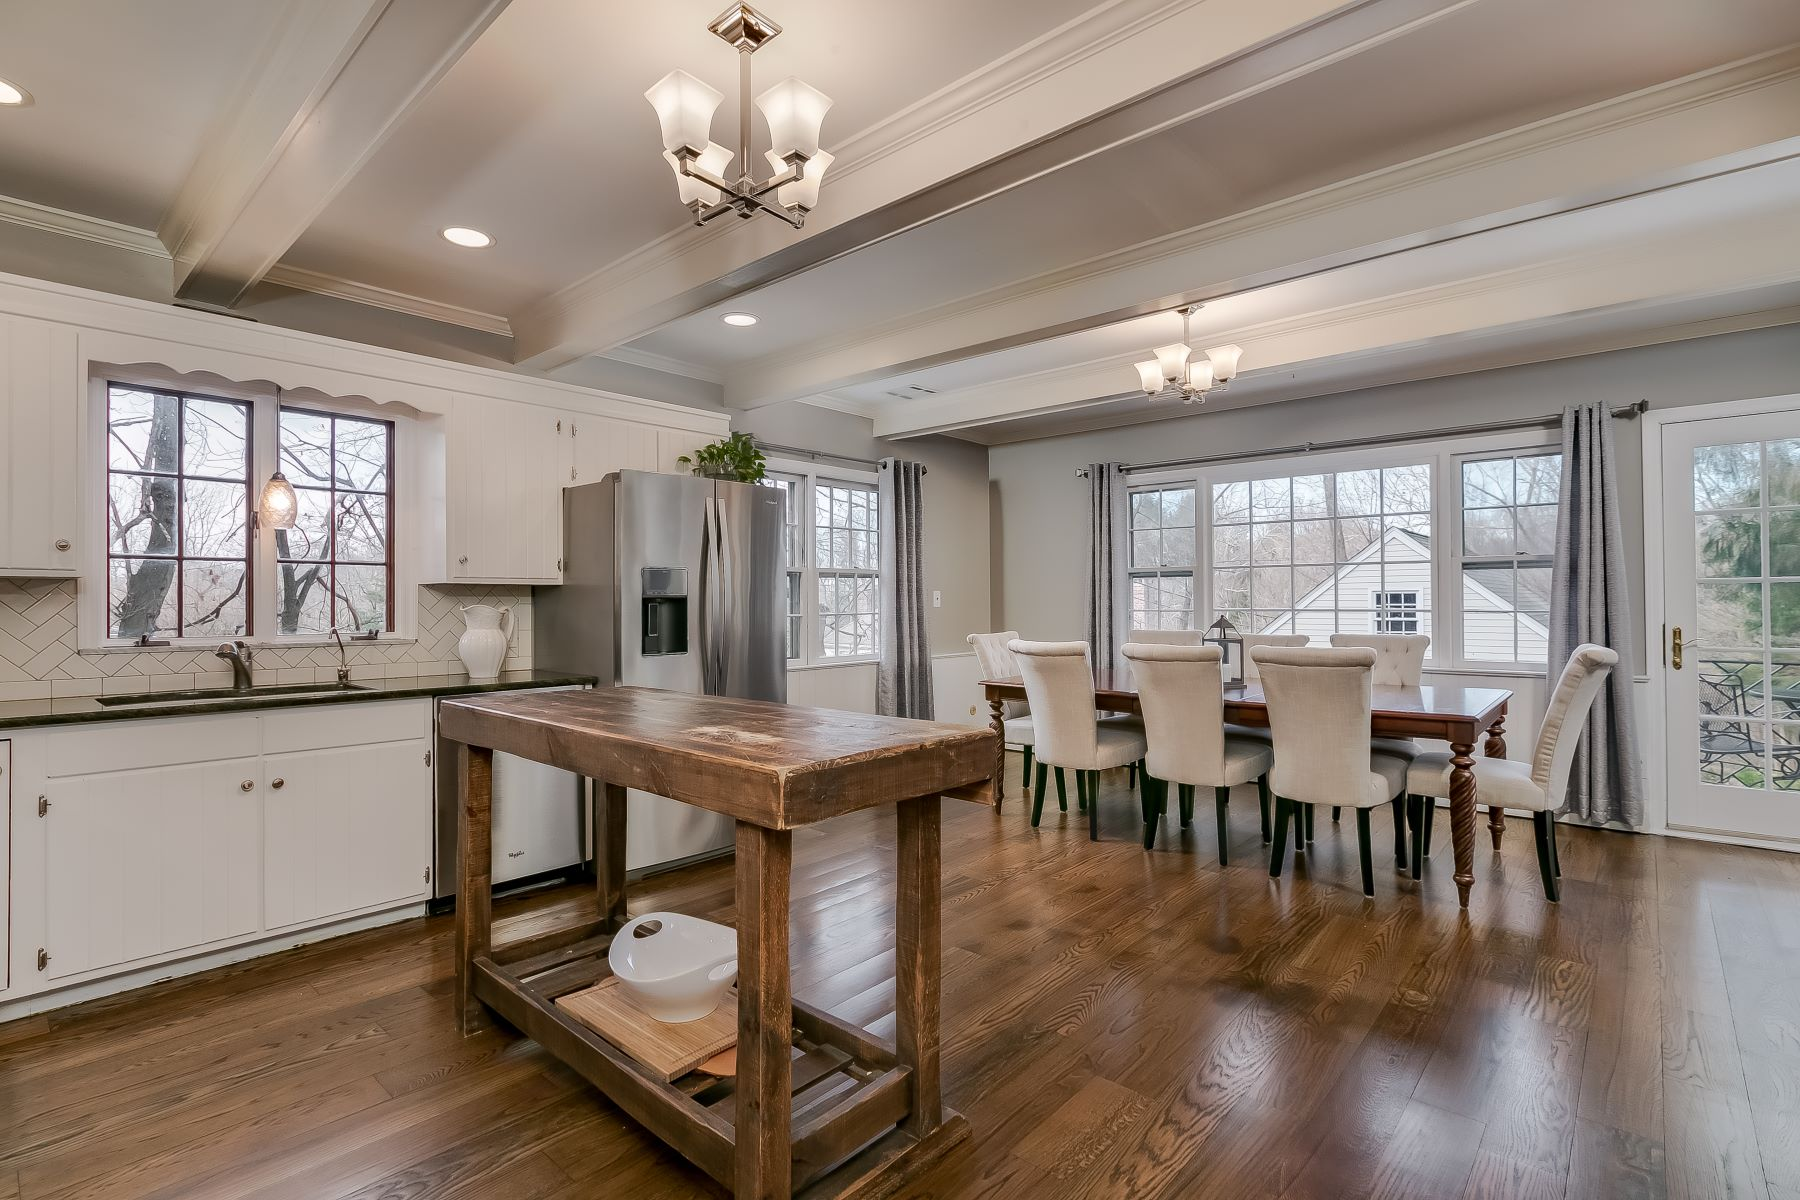 Single Family Homes for Sale at Re-imagining traditional as country modern 81 West Main Street Mendham Borough, New Jersey 07945 United States